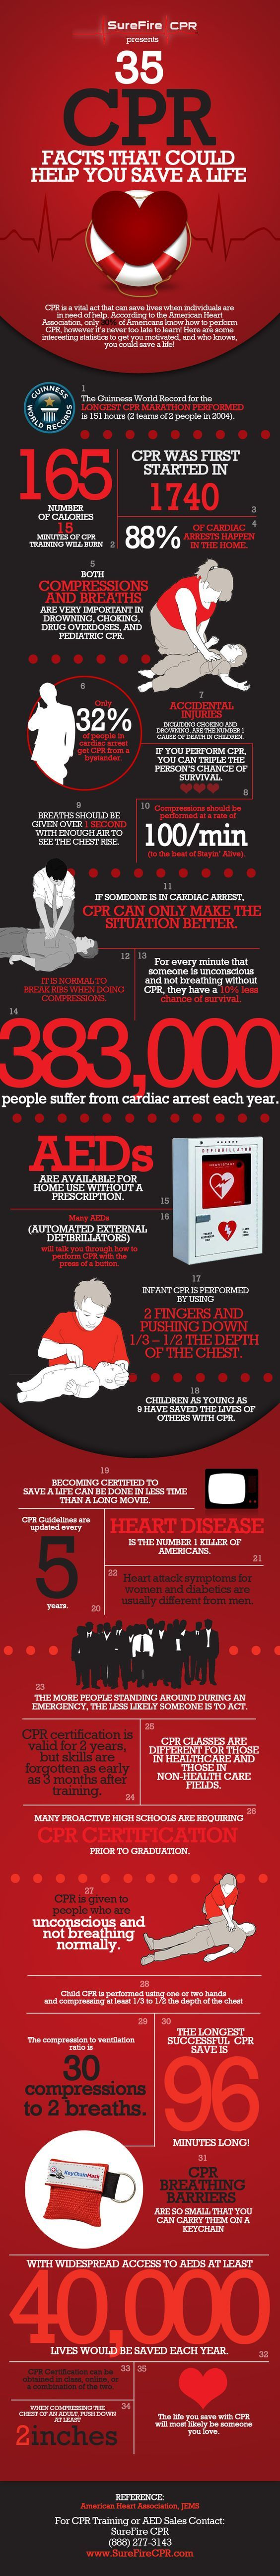 35 CPR Facts that Save Lives. Did you know that AEDs are available now for home use without a prescription? Use an AED with CPR to save lives. We cover this topic in our article here: http://insidefirstaid.com/personal/first-aid-kit/portable-automated-external-defibrillators-aed-cpr-protect-others-from-sudden-cardiac-arrest #cpr #training #aed